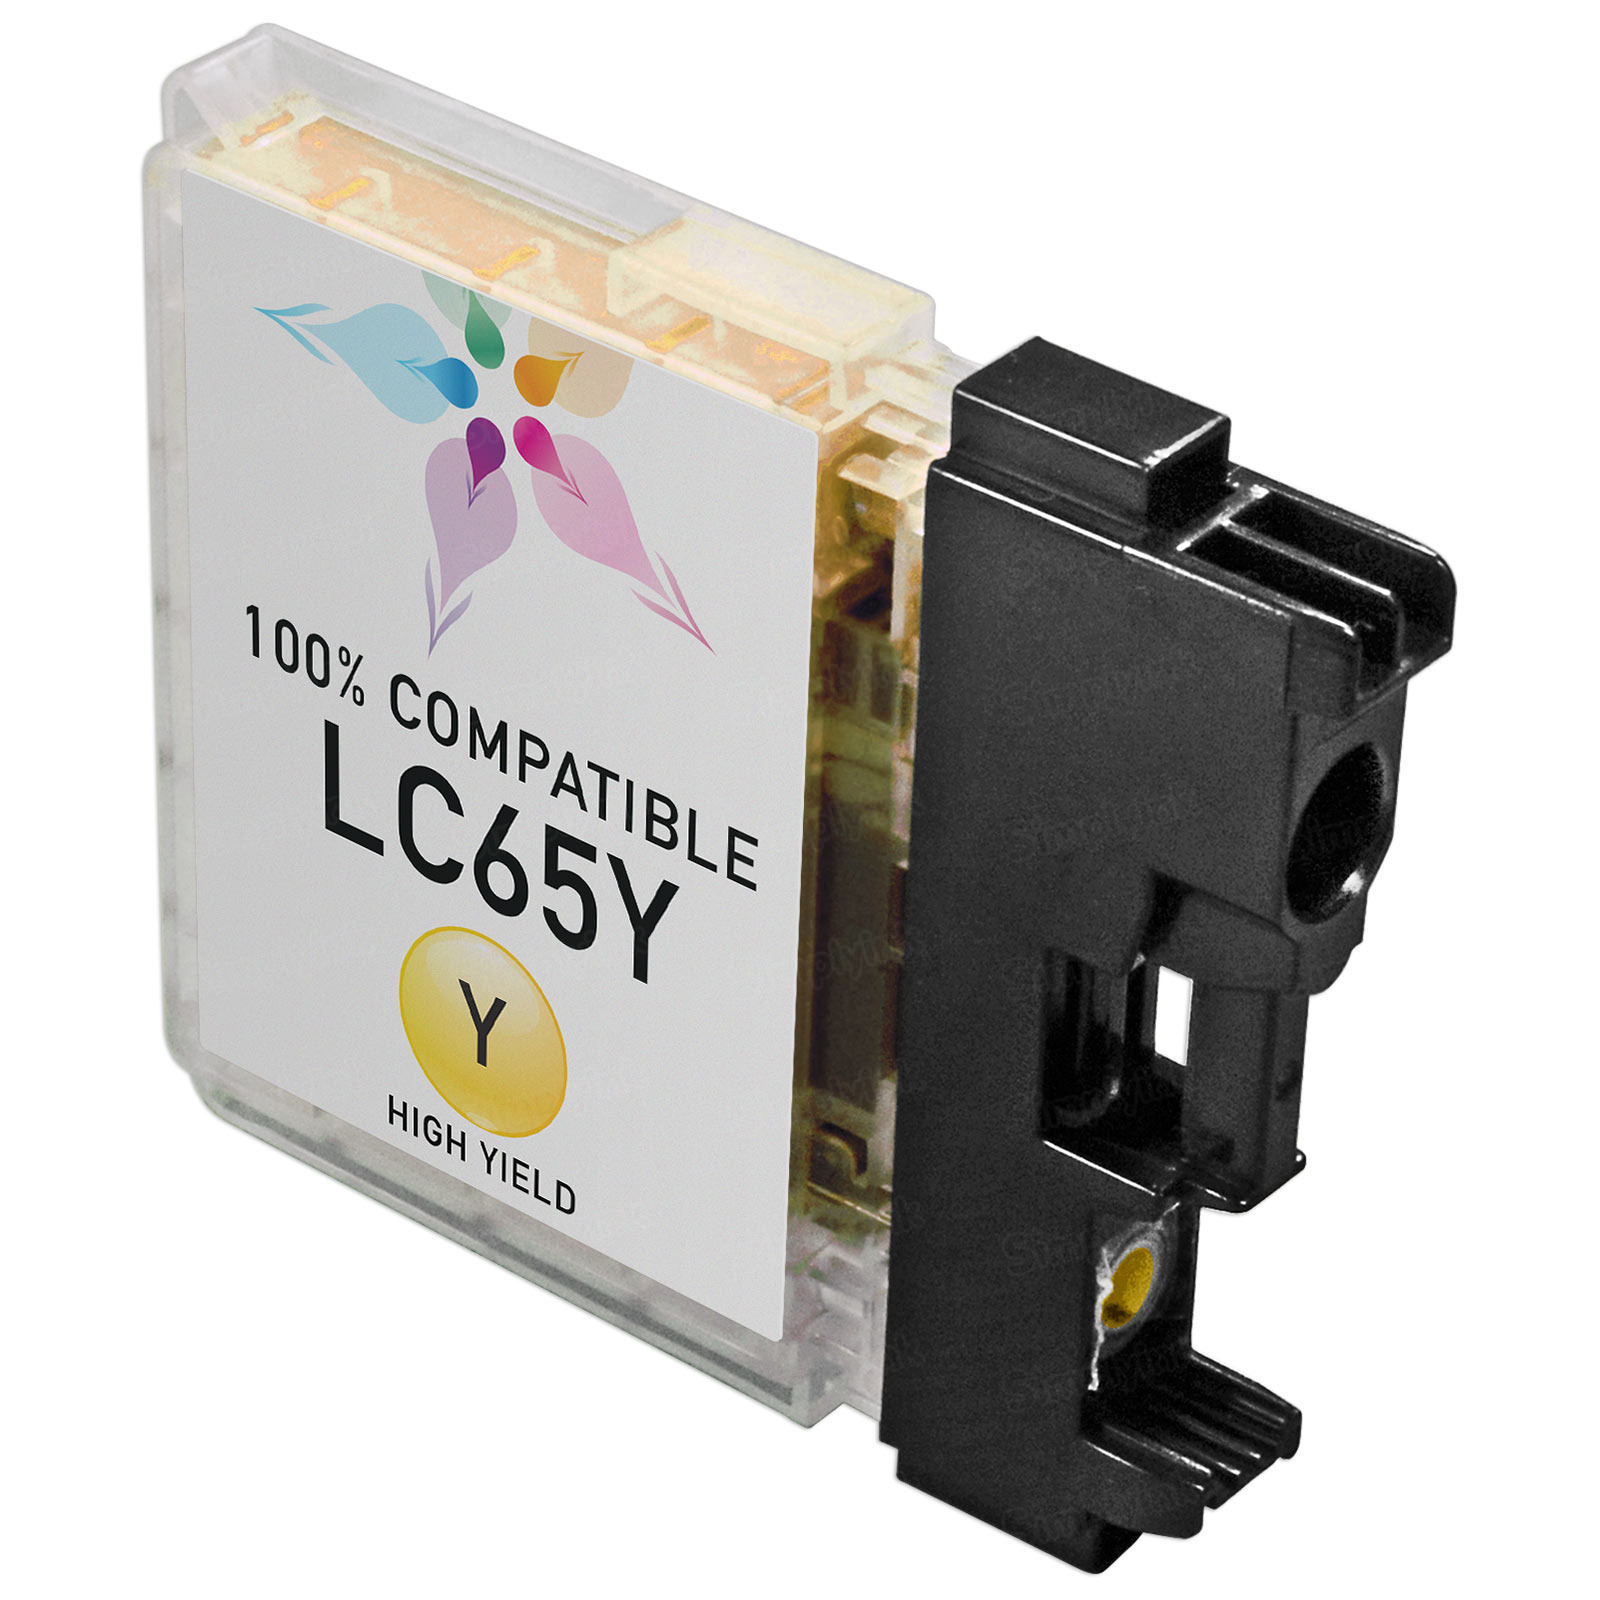 Brother Compatible LC65Y High Yield Yellow Ink